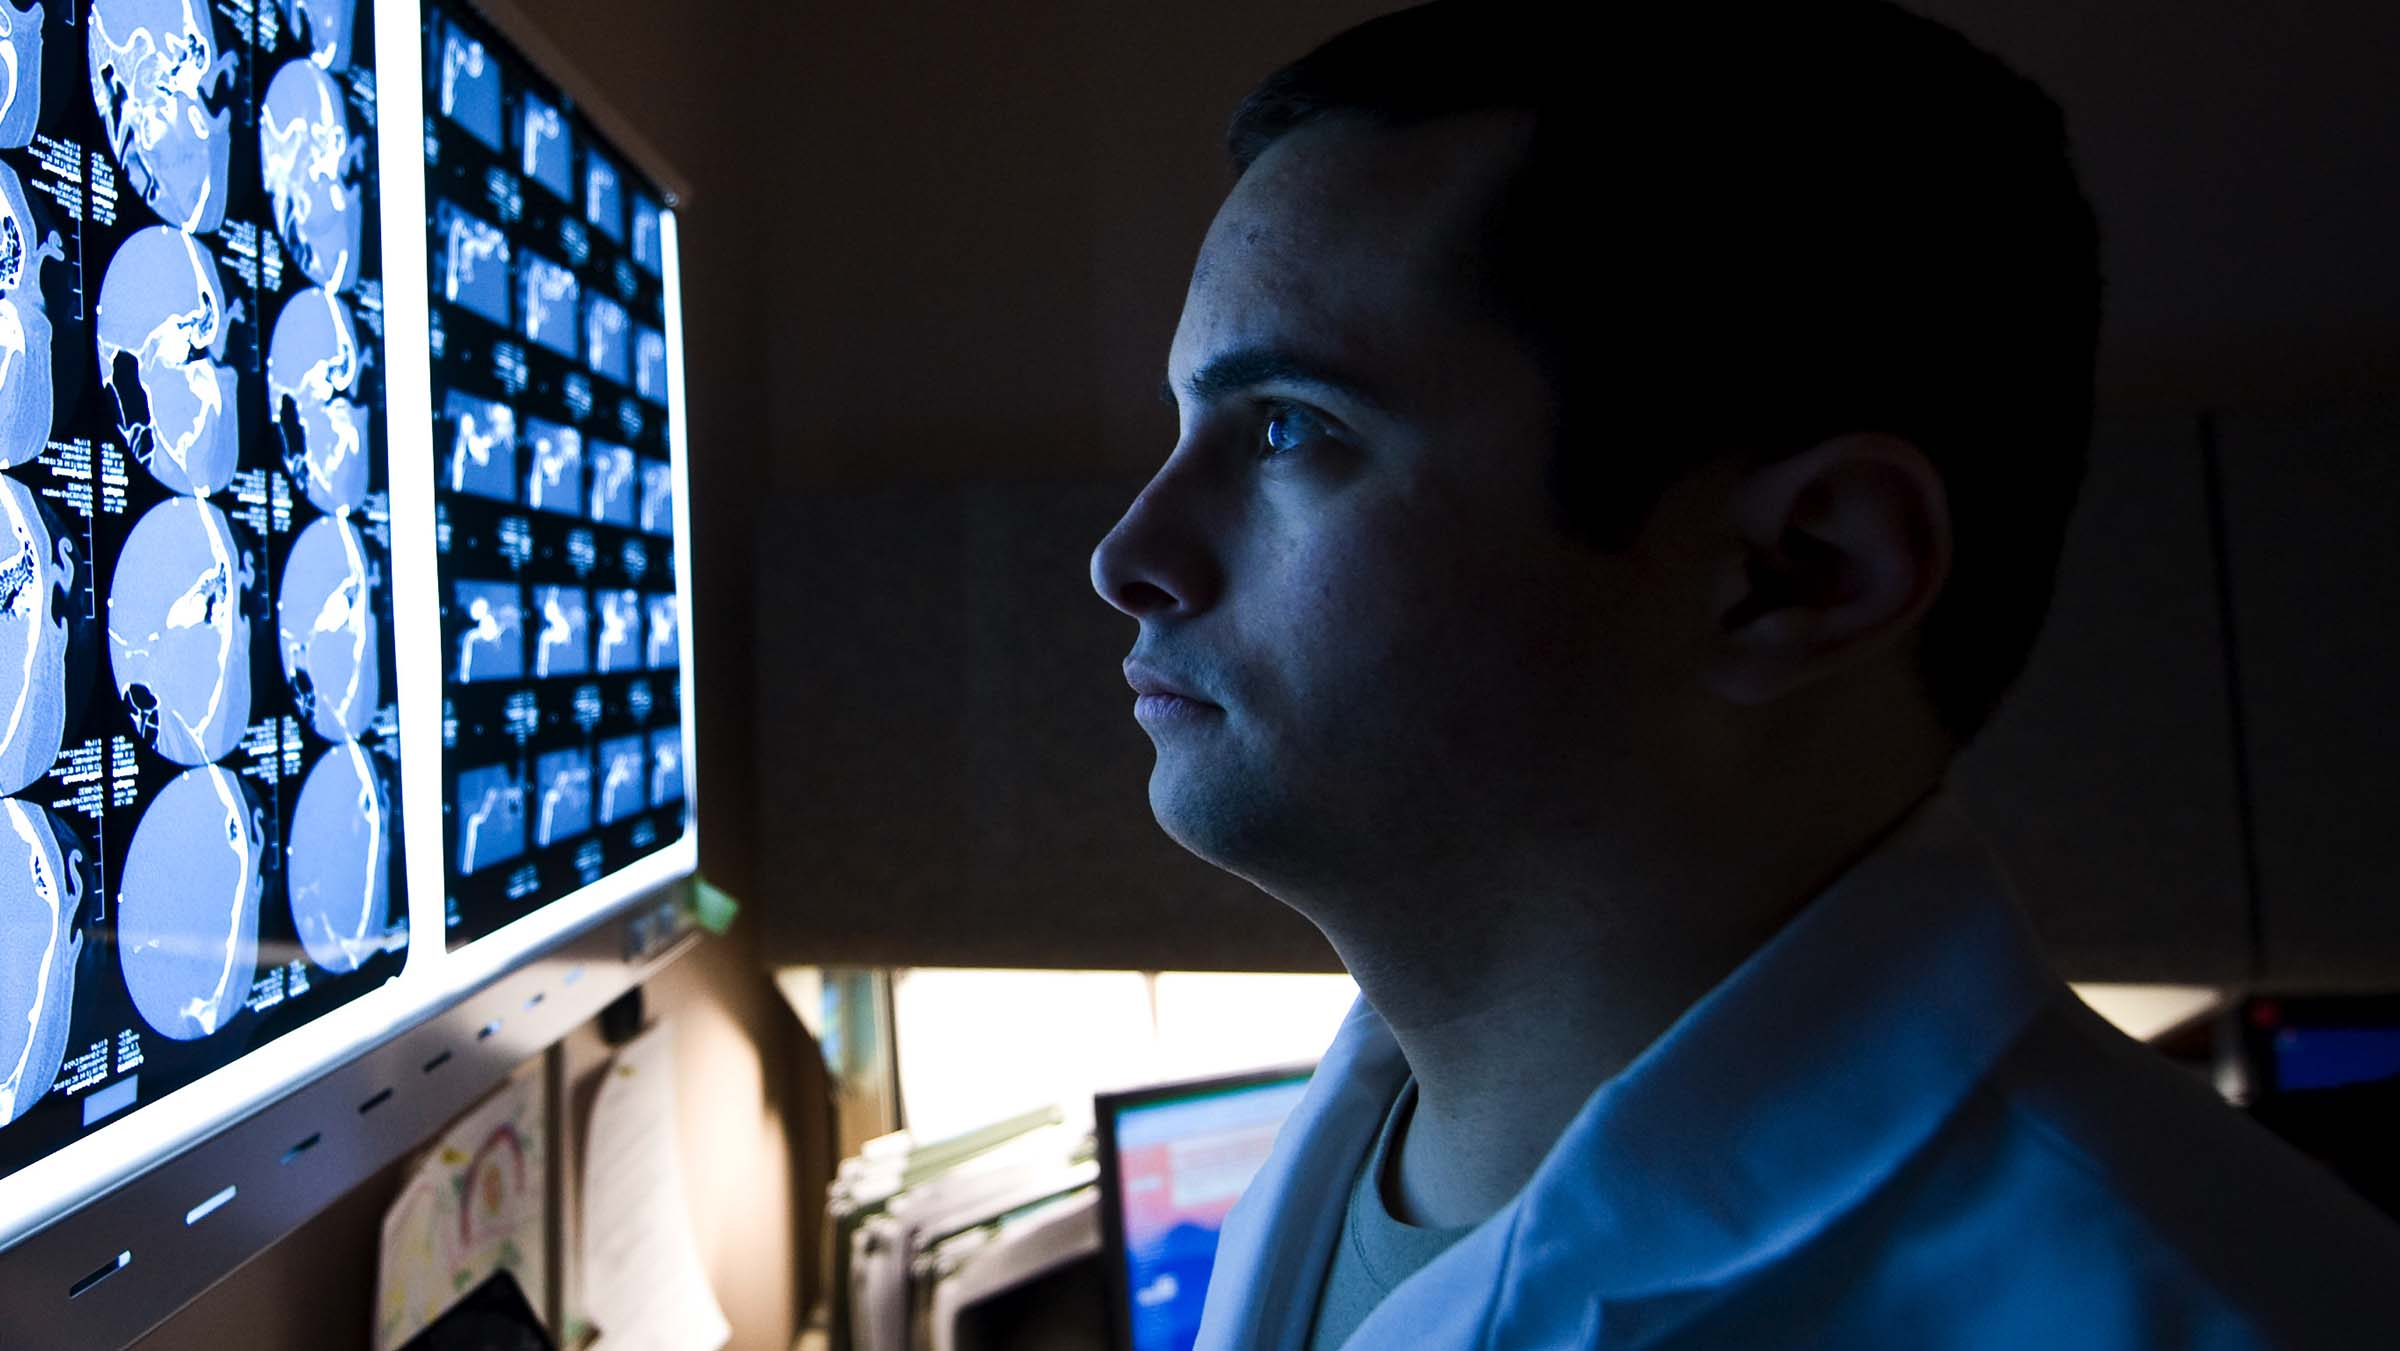 A military doctor studies a patient's computed tomography scan.